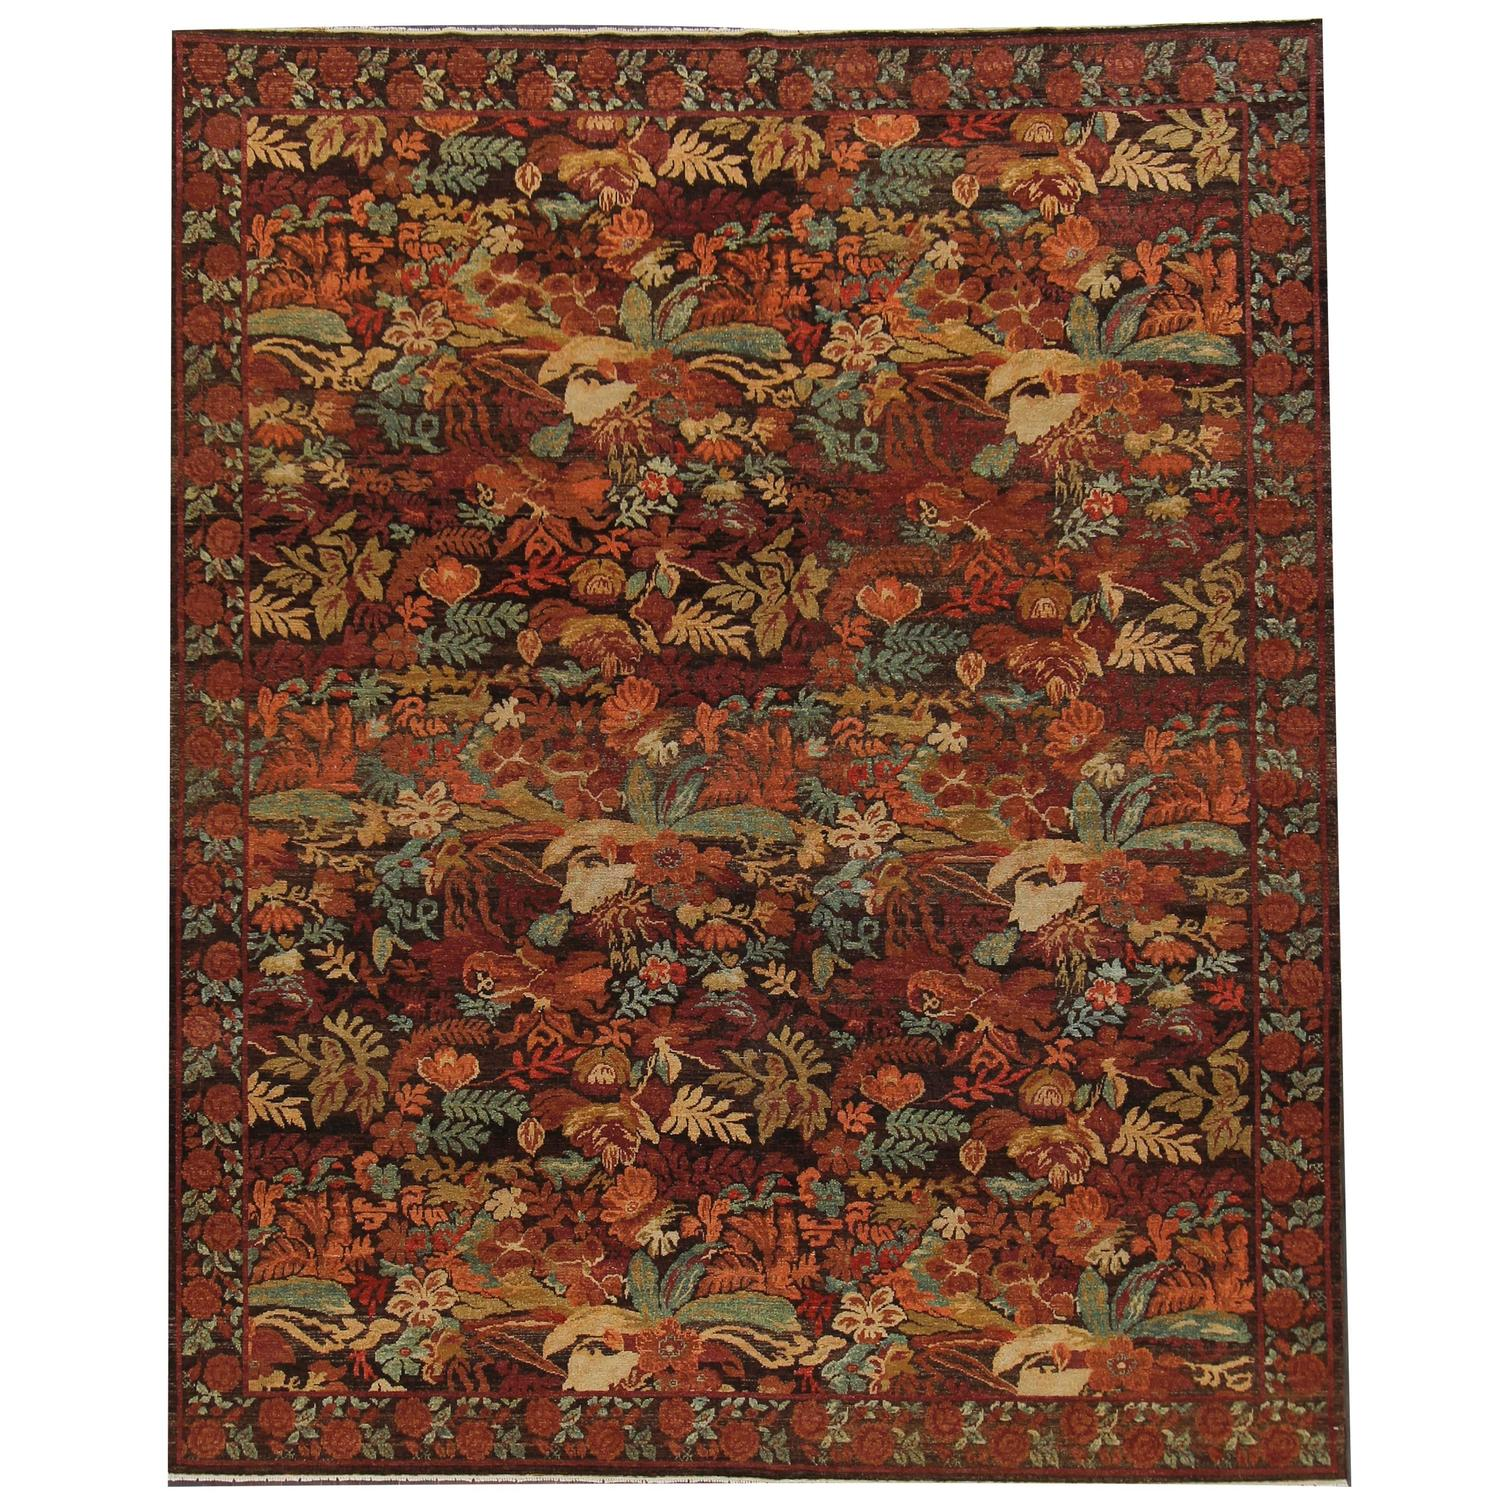 Warm toned tropical all over floral rug for sale at 1stdibs for Warm rugs